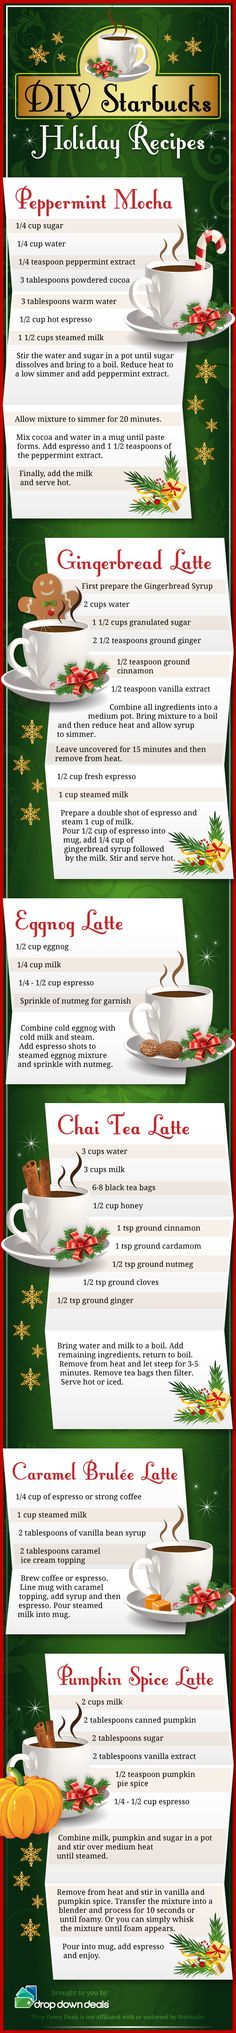 DIY Starbucks holiday drink recipes